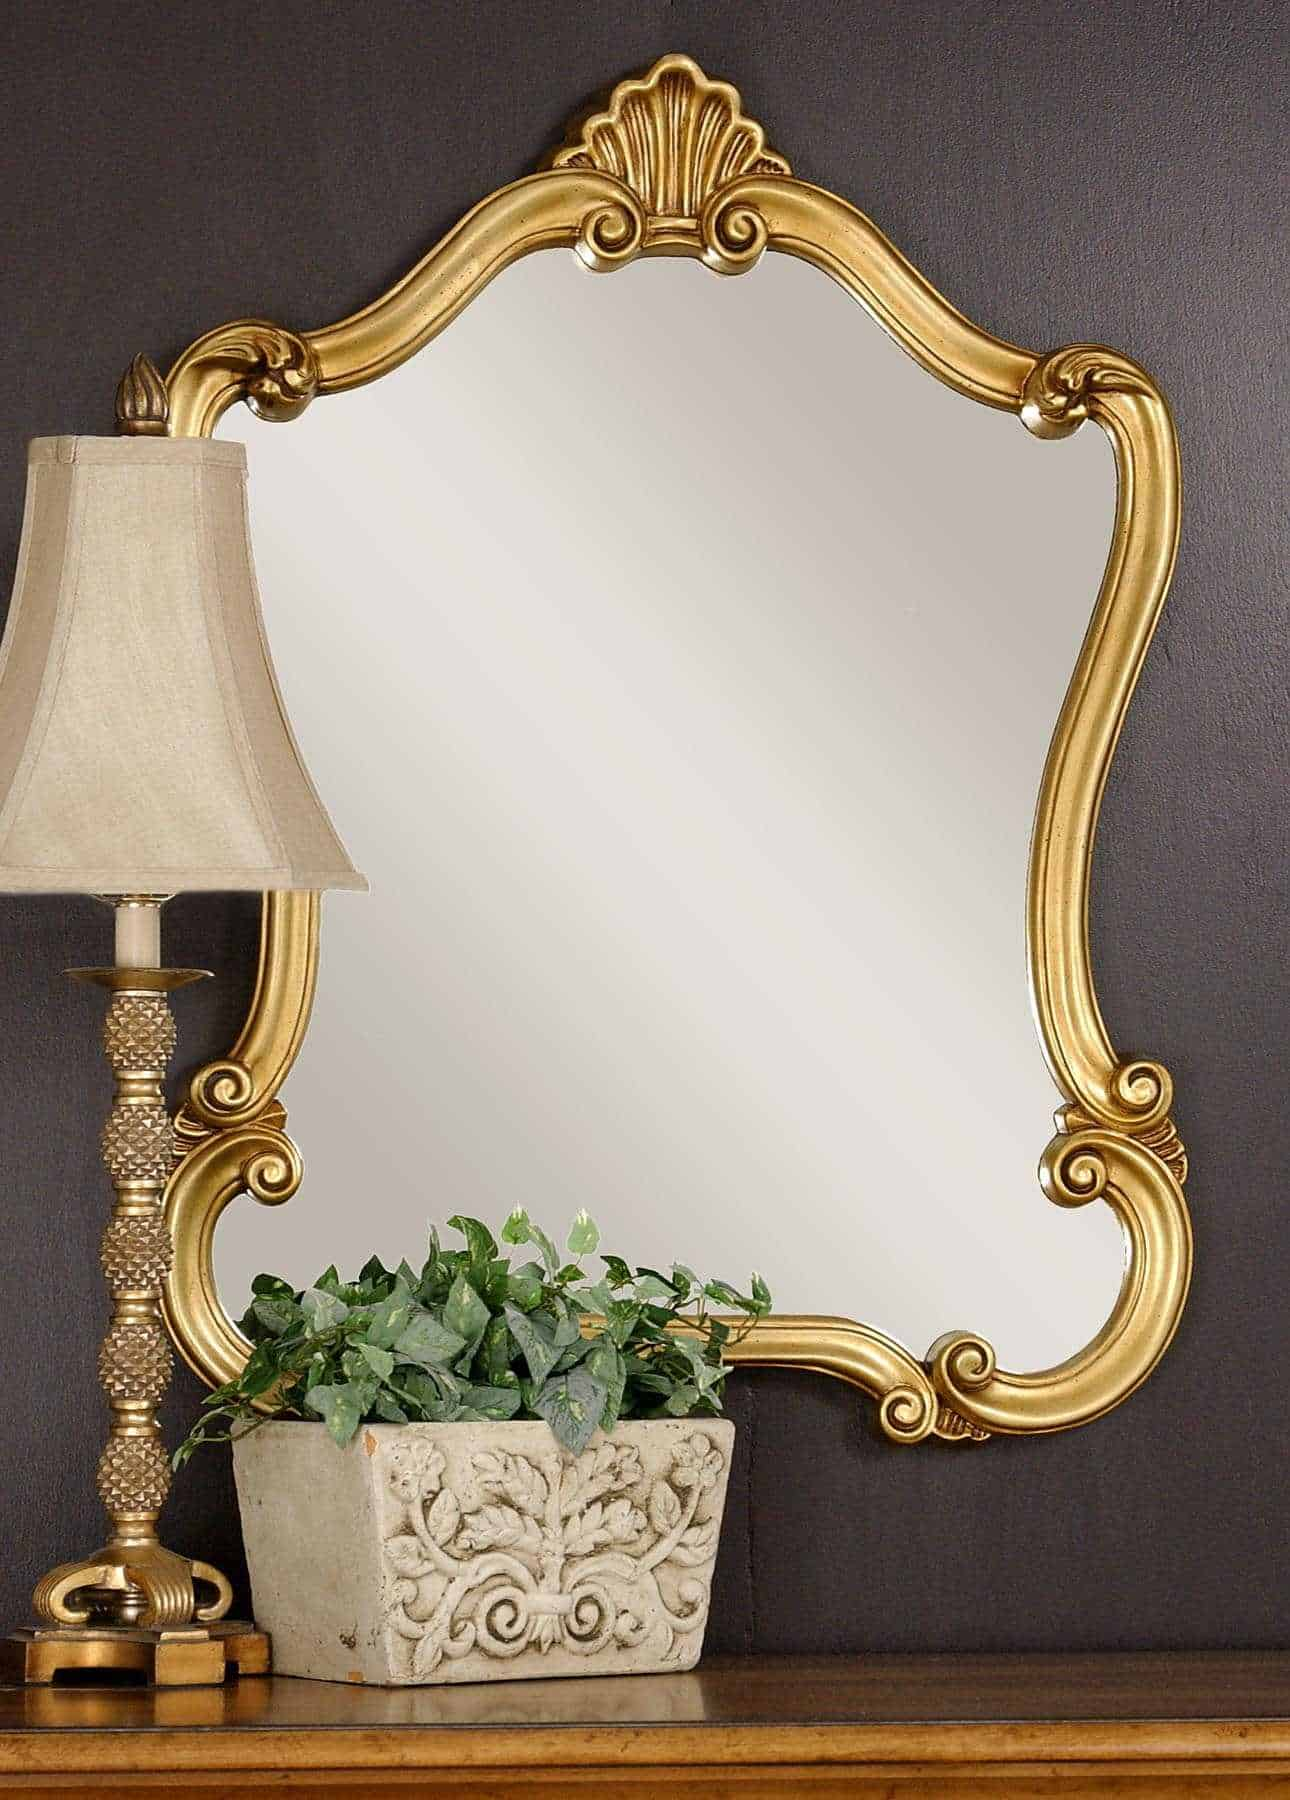 golden framed vintage style mirror